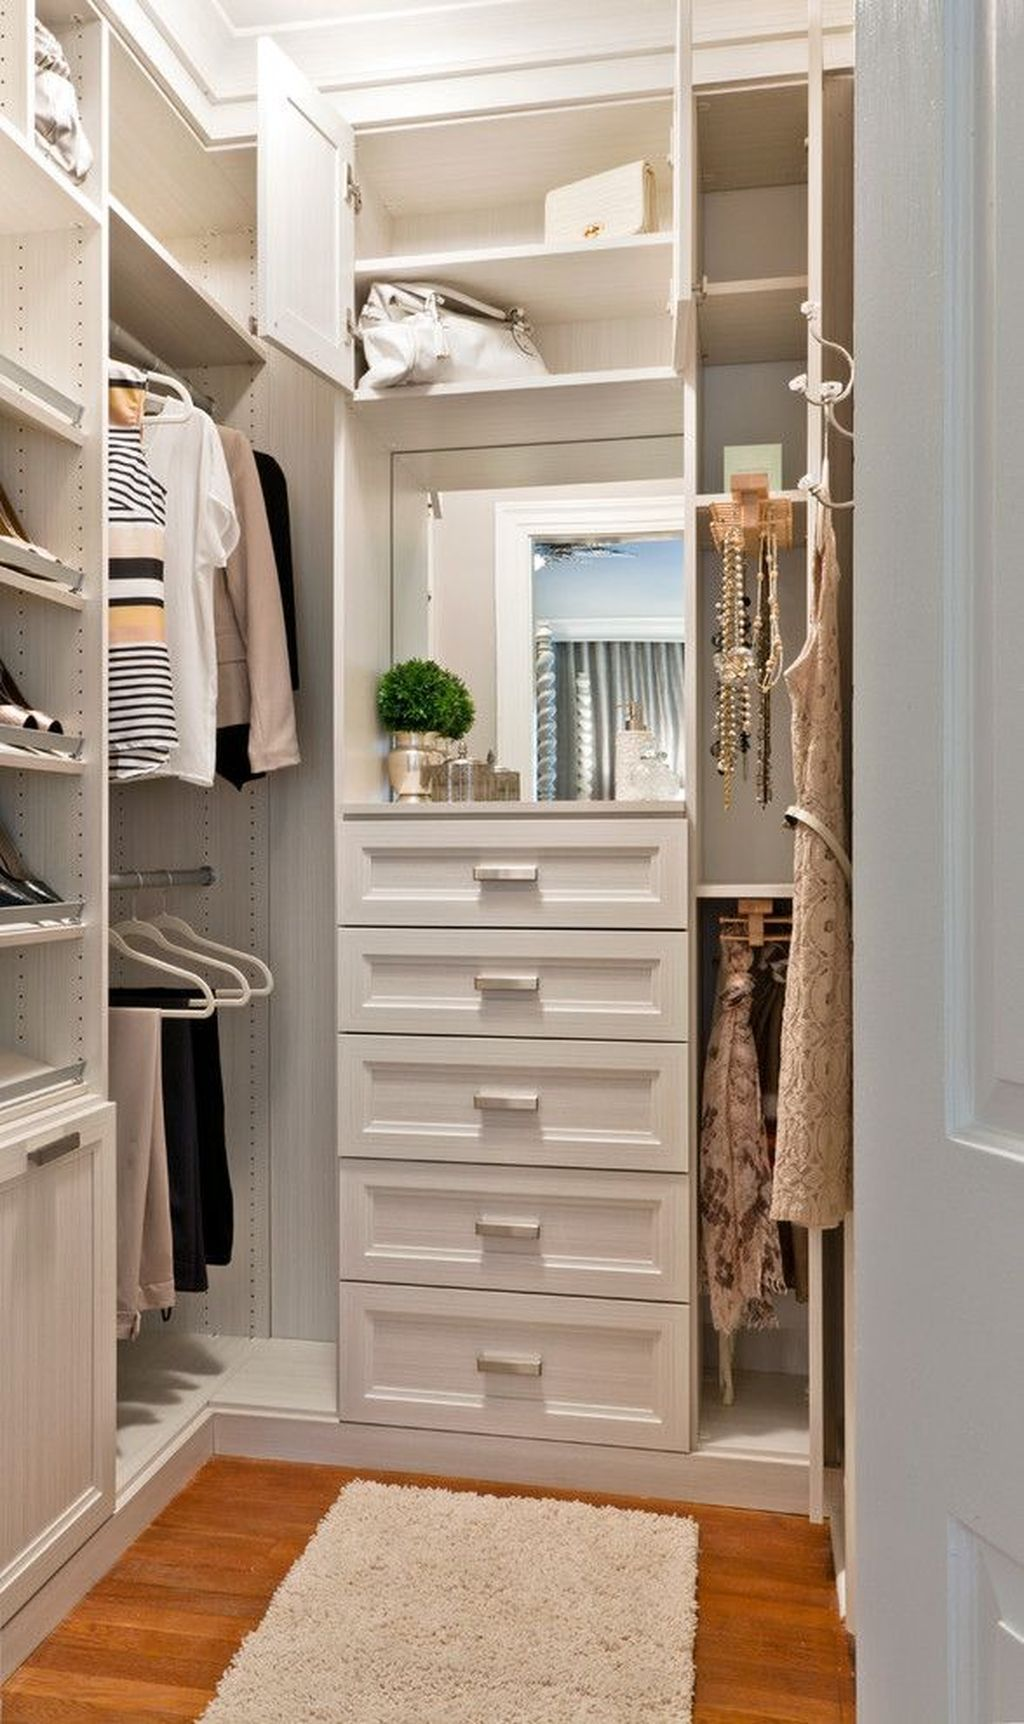 Cool 36 The Best Closet Organization Ideas